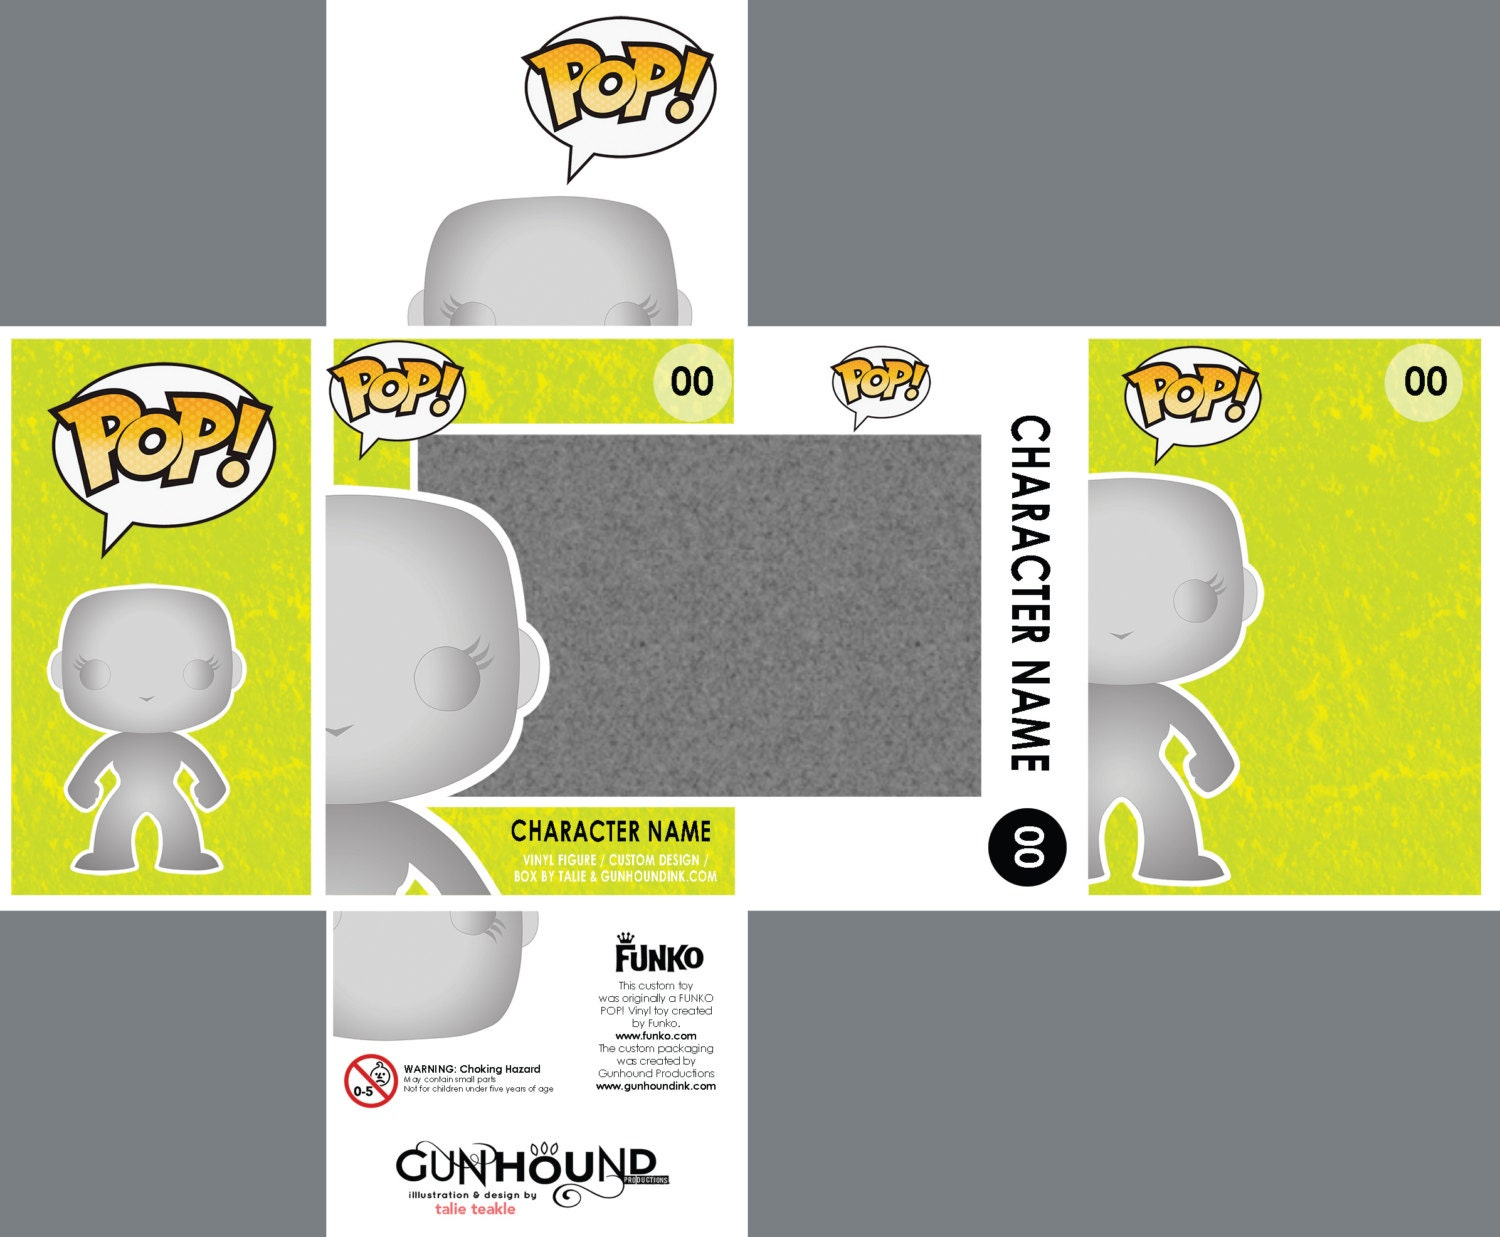 PHOTOSHOP files for custom Funko Pop Vinyl toy packaging.